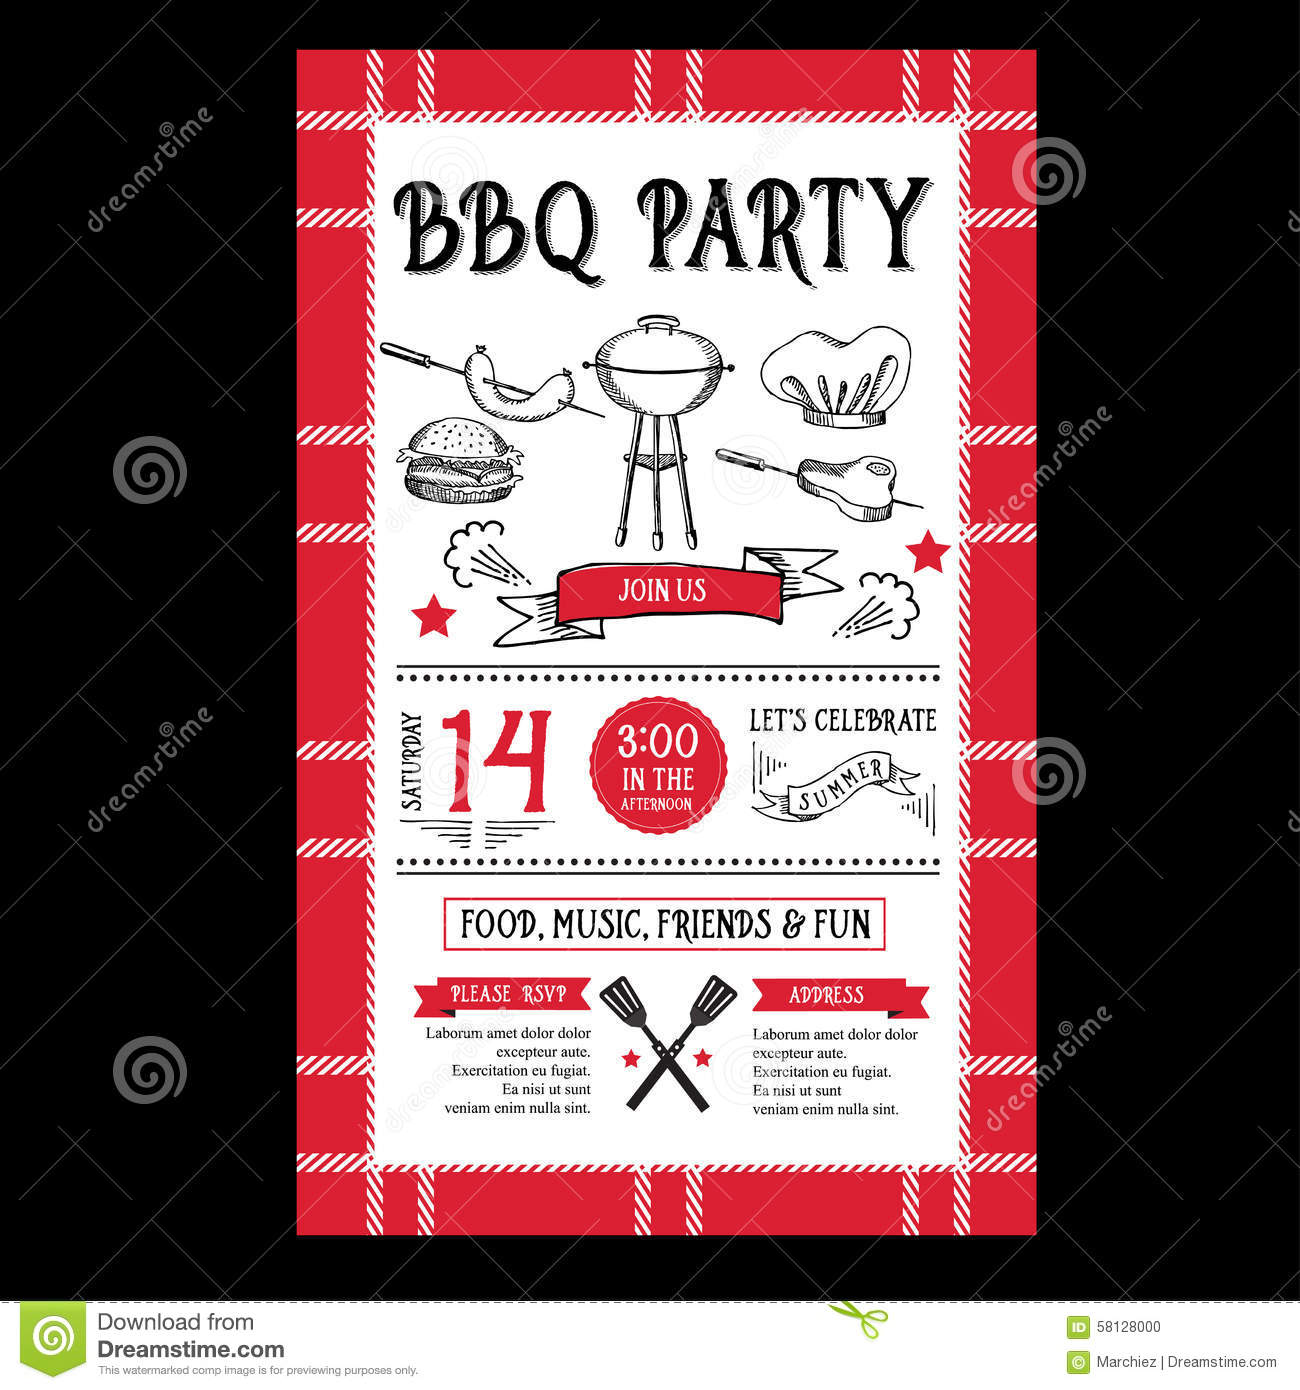 barbecue party invitation bbq template menu design food flyer stock vector image 58128000. Black Bedroom Furniture Sets. Home Design Ideas